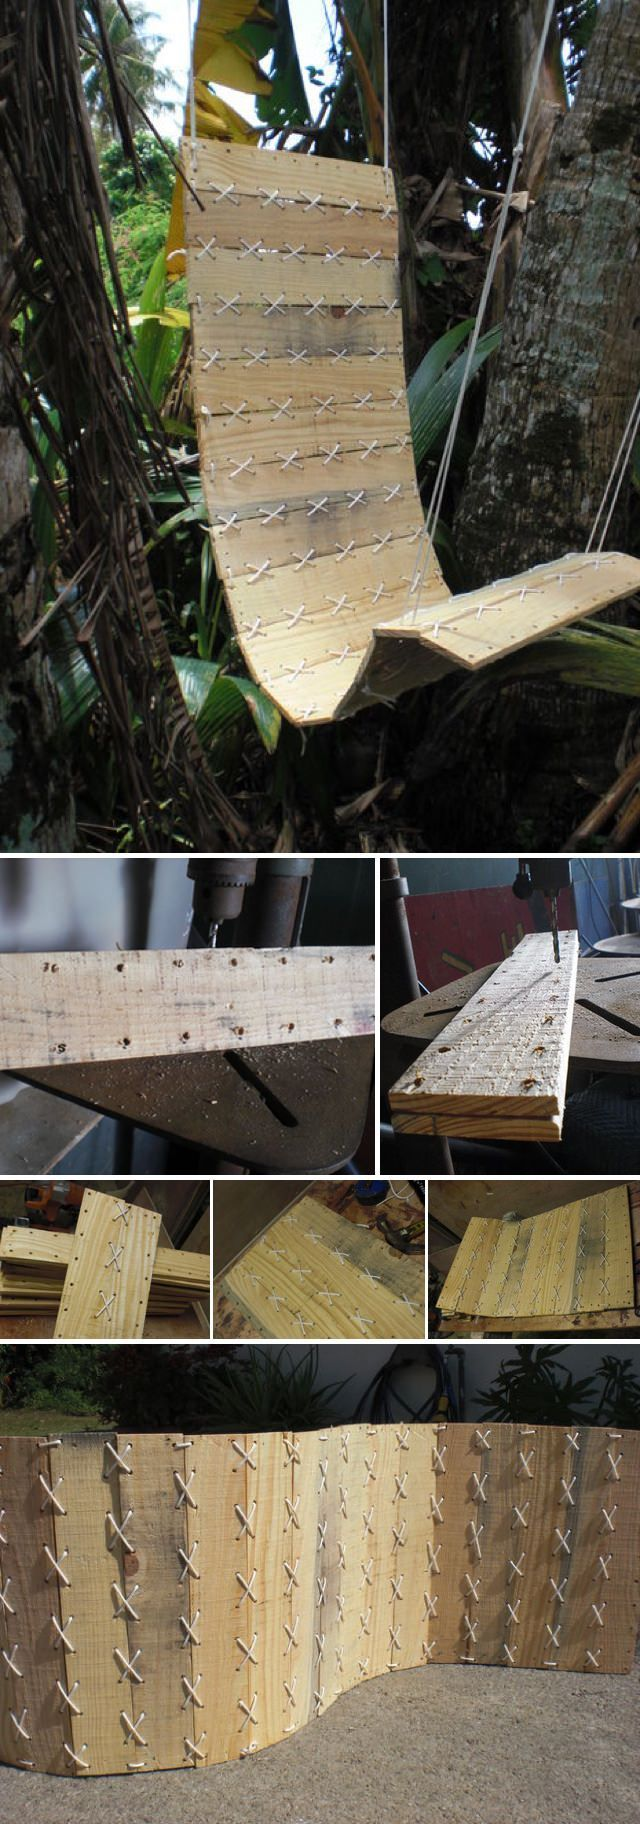 DIY Pallet proejcts That Are Easy to Make ! Today we present you one collection of 20+ DIY Pallet Projects  offers inspiring ideas. You can make so many different type of items with pallets and you can get started selling your crafts on Etsy or other sites. We hope you find our gallery awesome. You can …